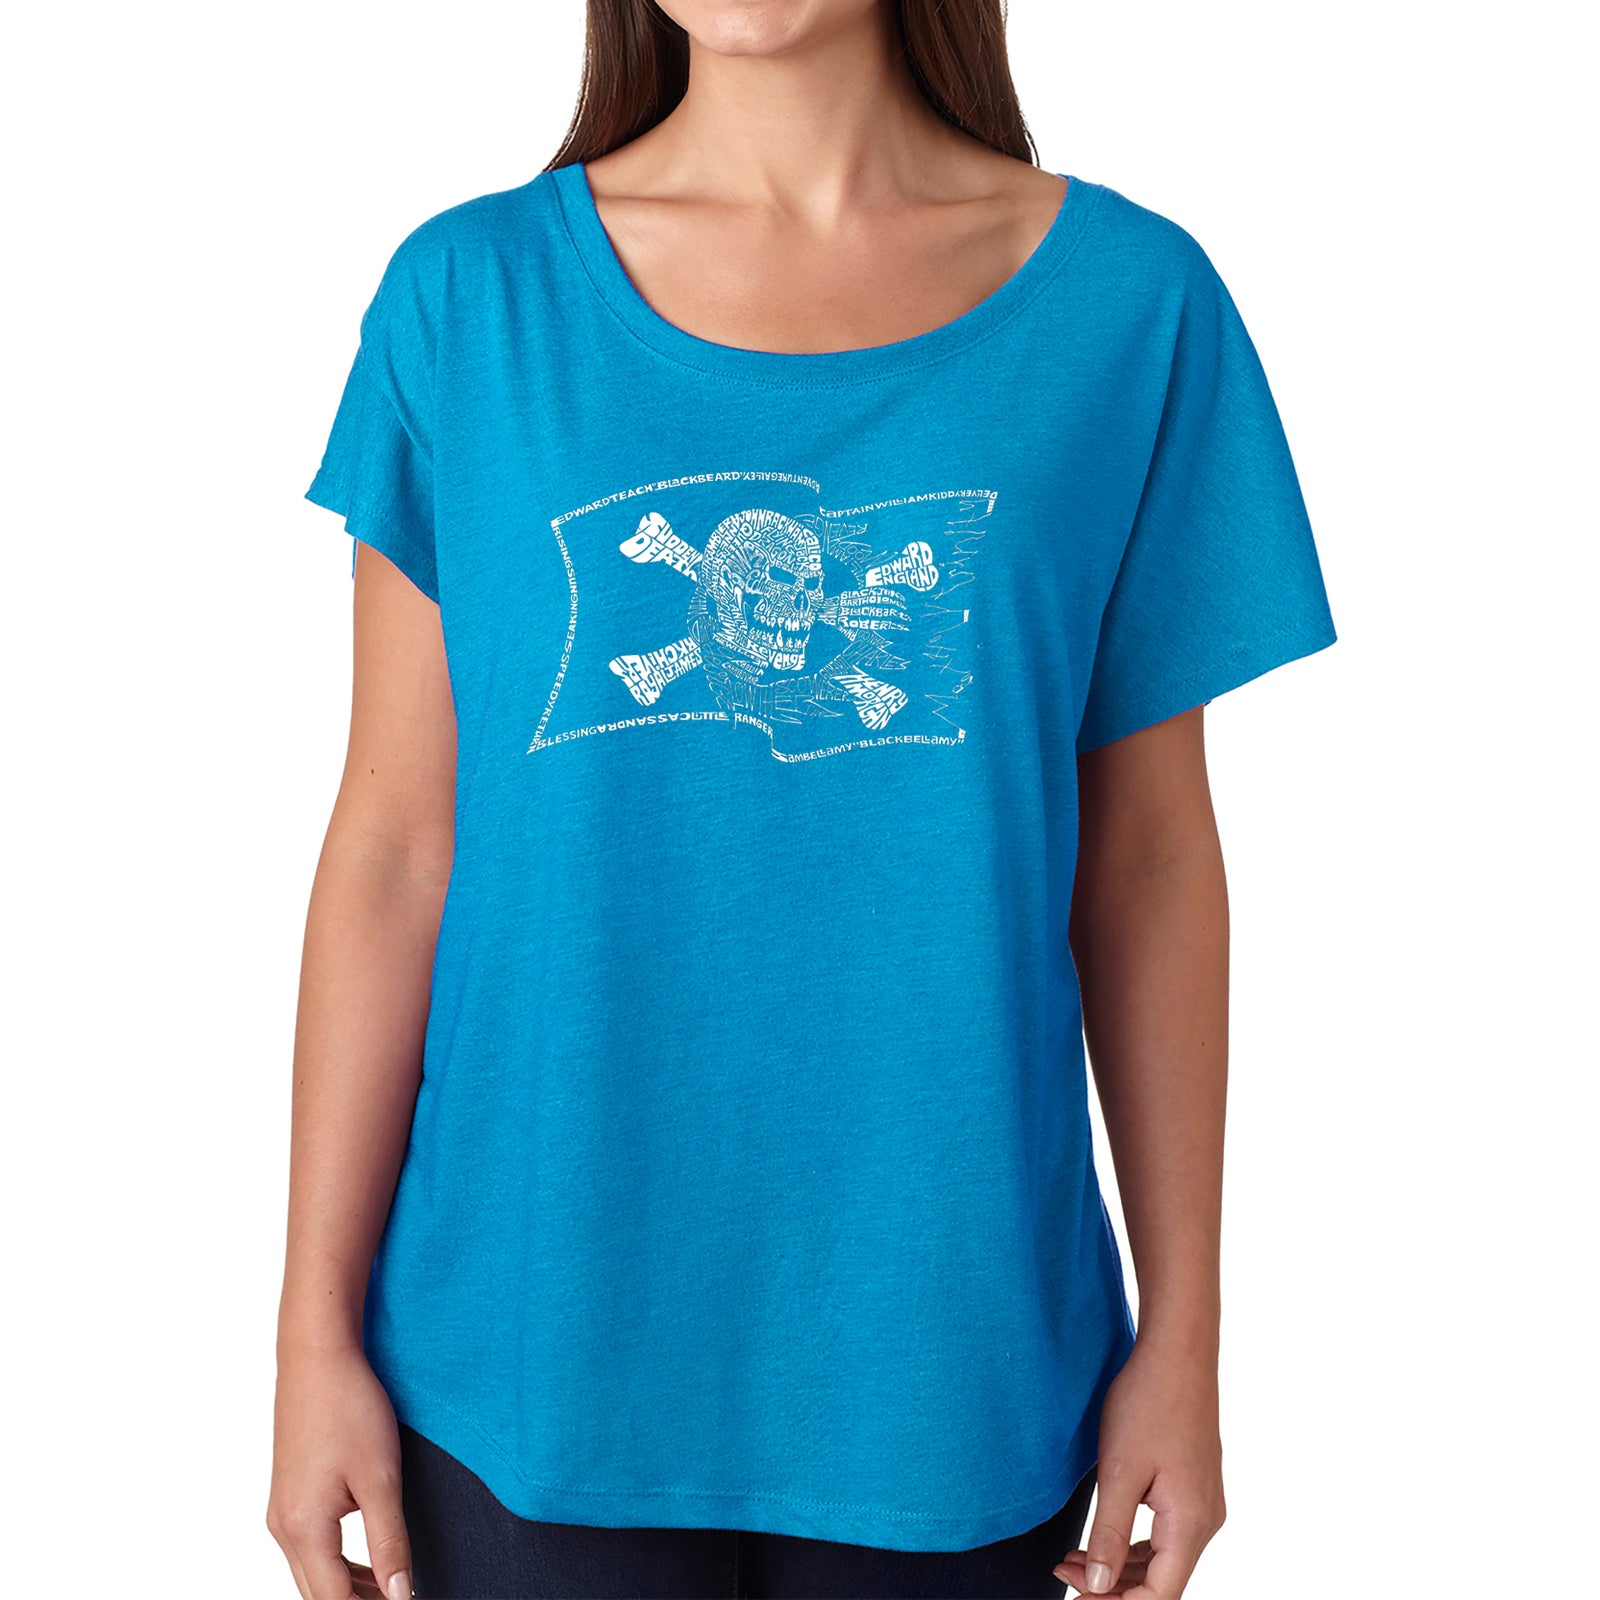 Women's Loose Fit Dolman Cut Word Art Shirt - FAMOUS PIRATE CAPTAINS AND SHIPS